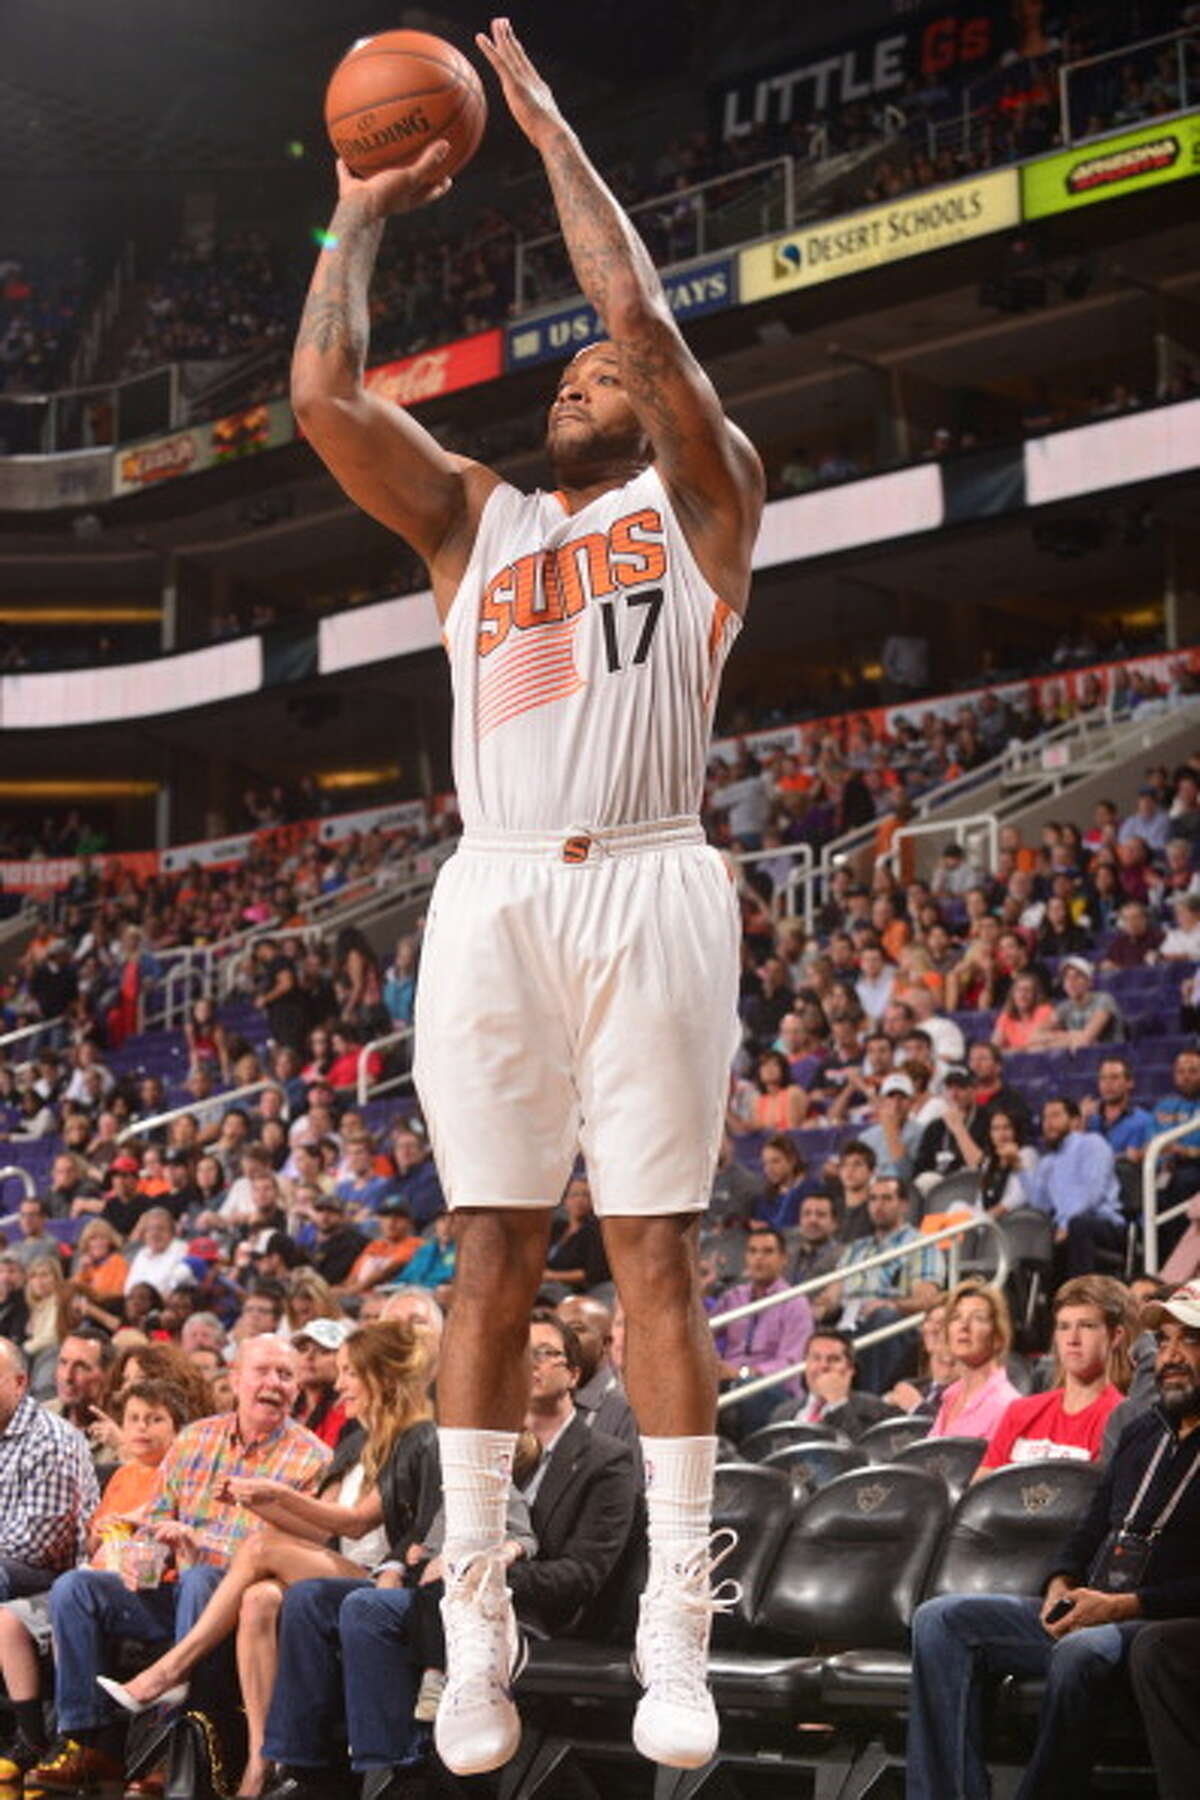 1. P.J. Tucker allegedly did not write a paper Former UT forward P.J. Tucker, now a forward for the Phoenix Suns, reportedly received improper assistance while preparing for the 2006 NBA draft. Former athletic department employee Adam Creasy said he believes Tucker did not write a paper for a social work class that was turned in while Tucker was reportedly out of the state.